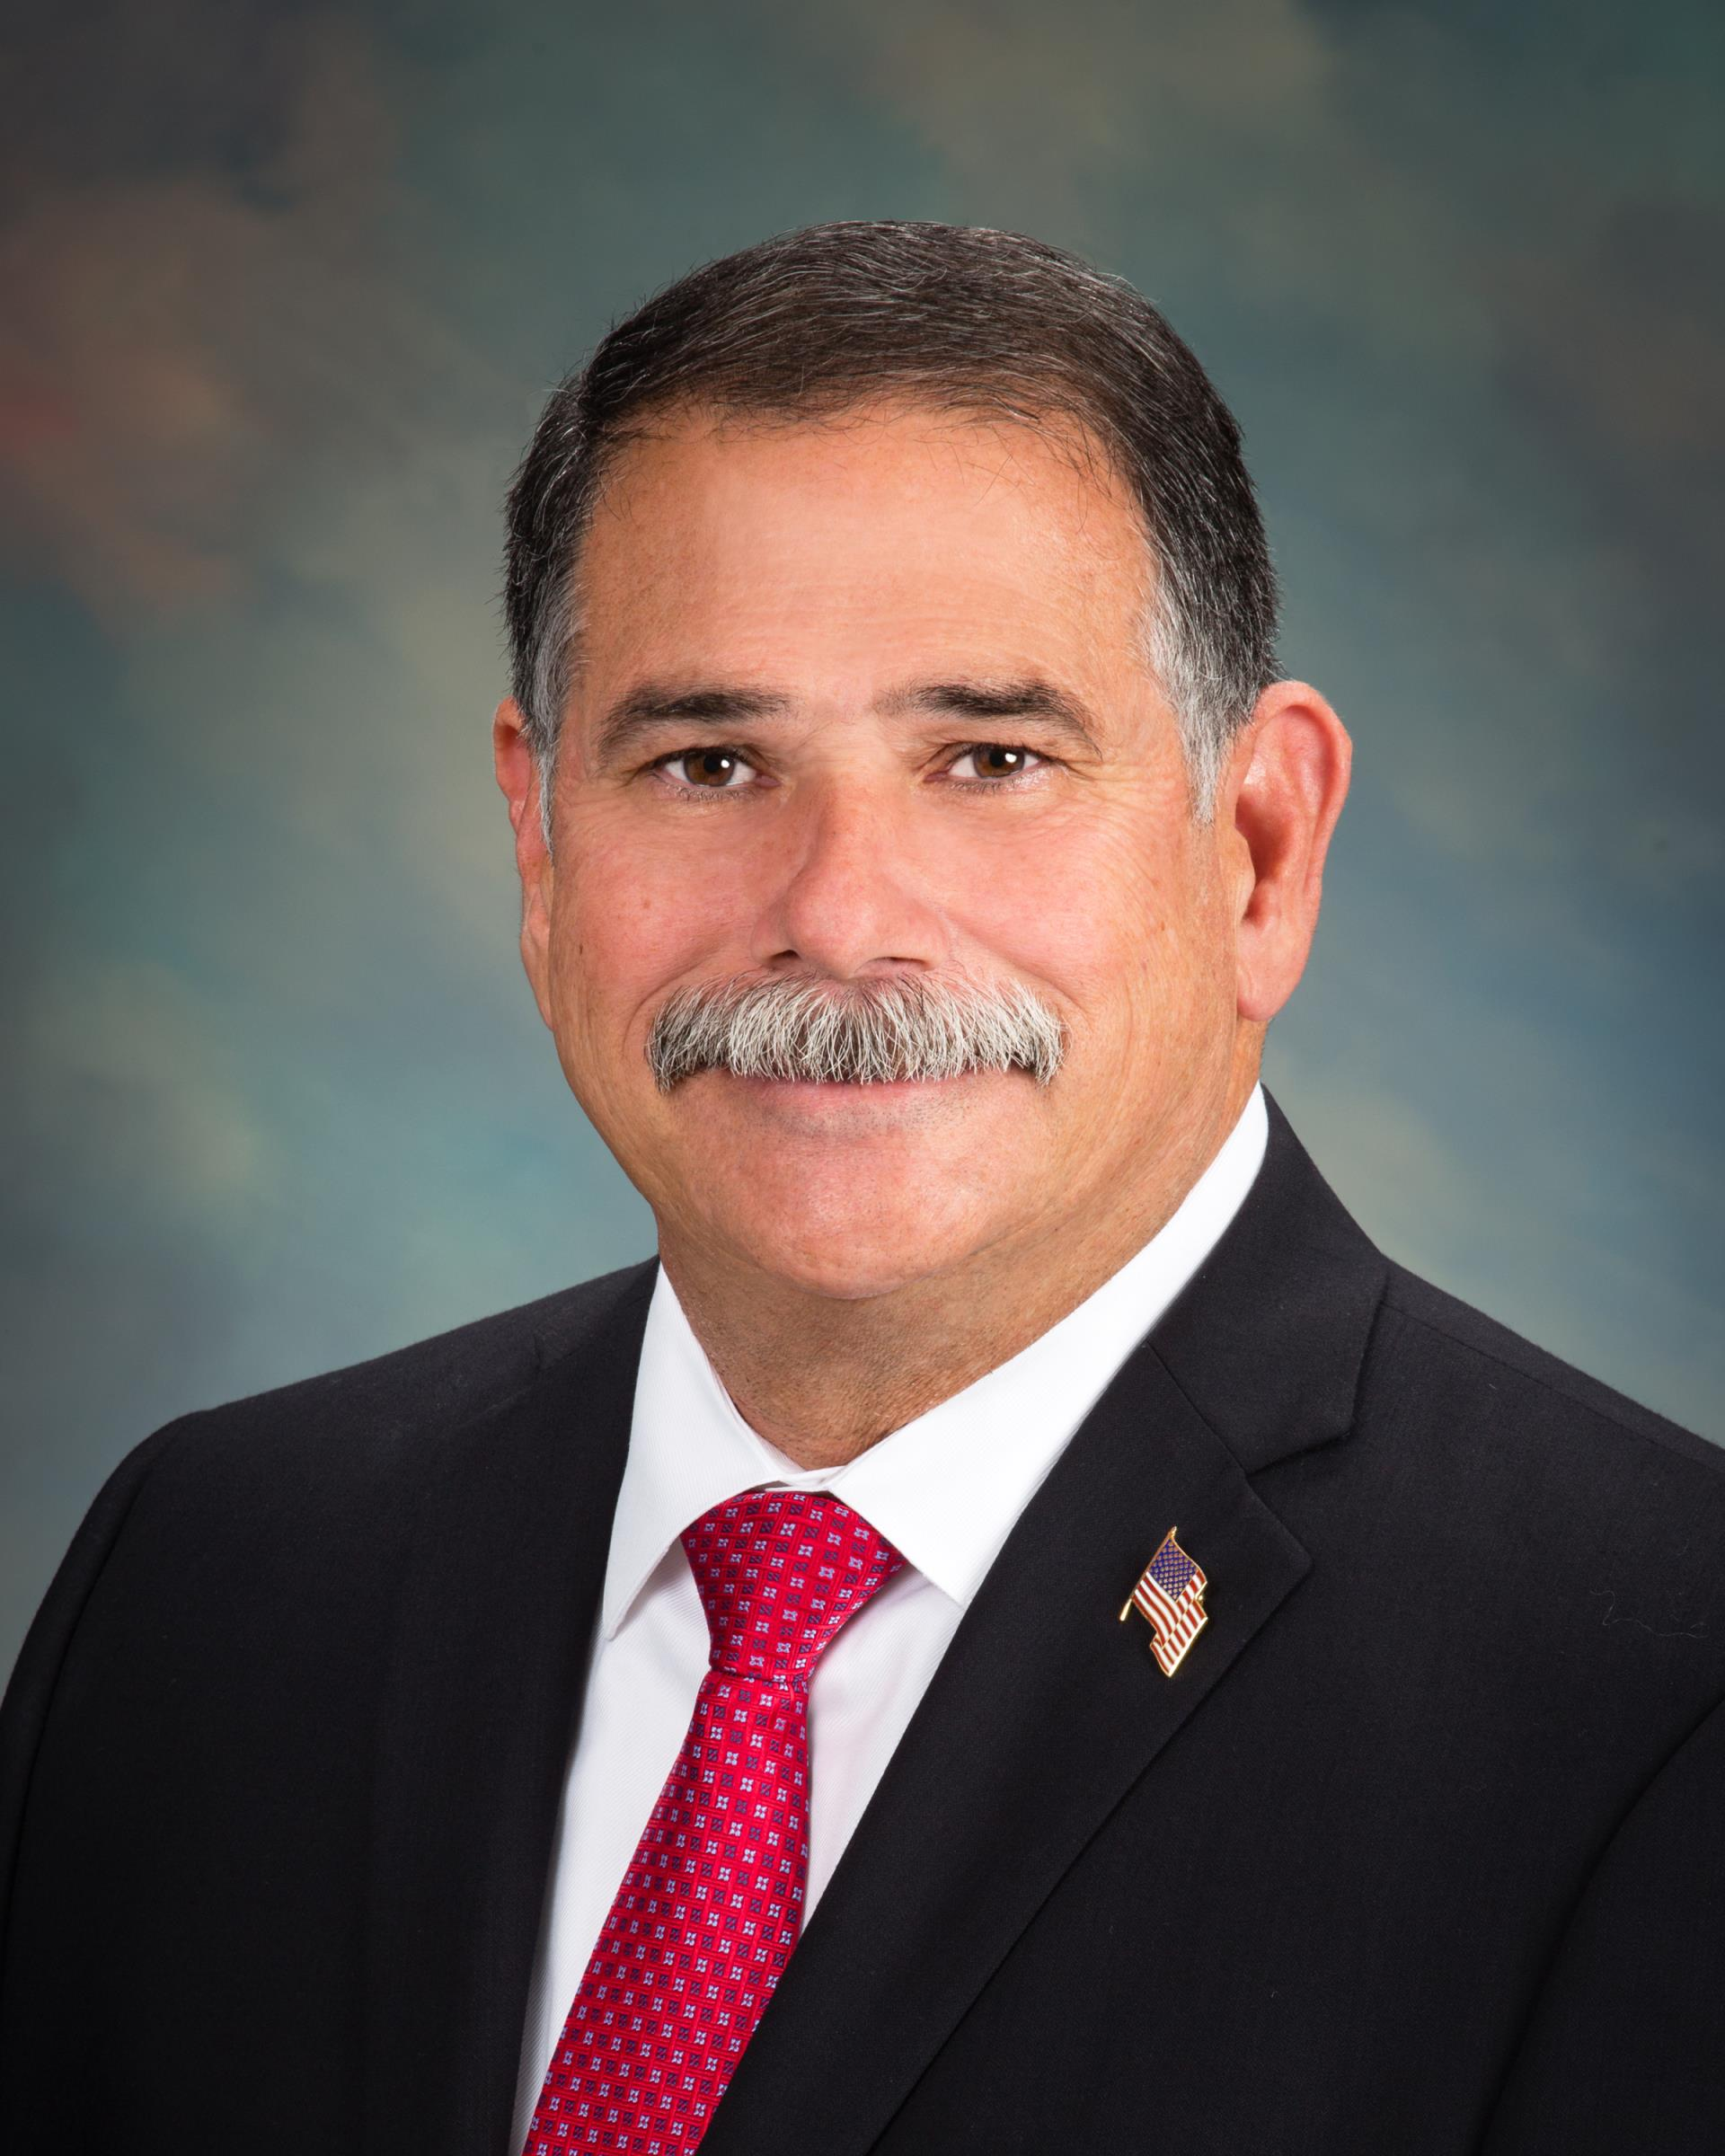 City manager government card - Geoff Rizzo 2014 Headshot